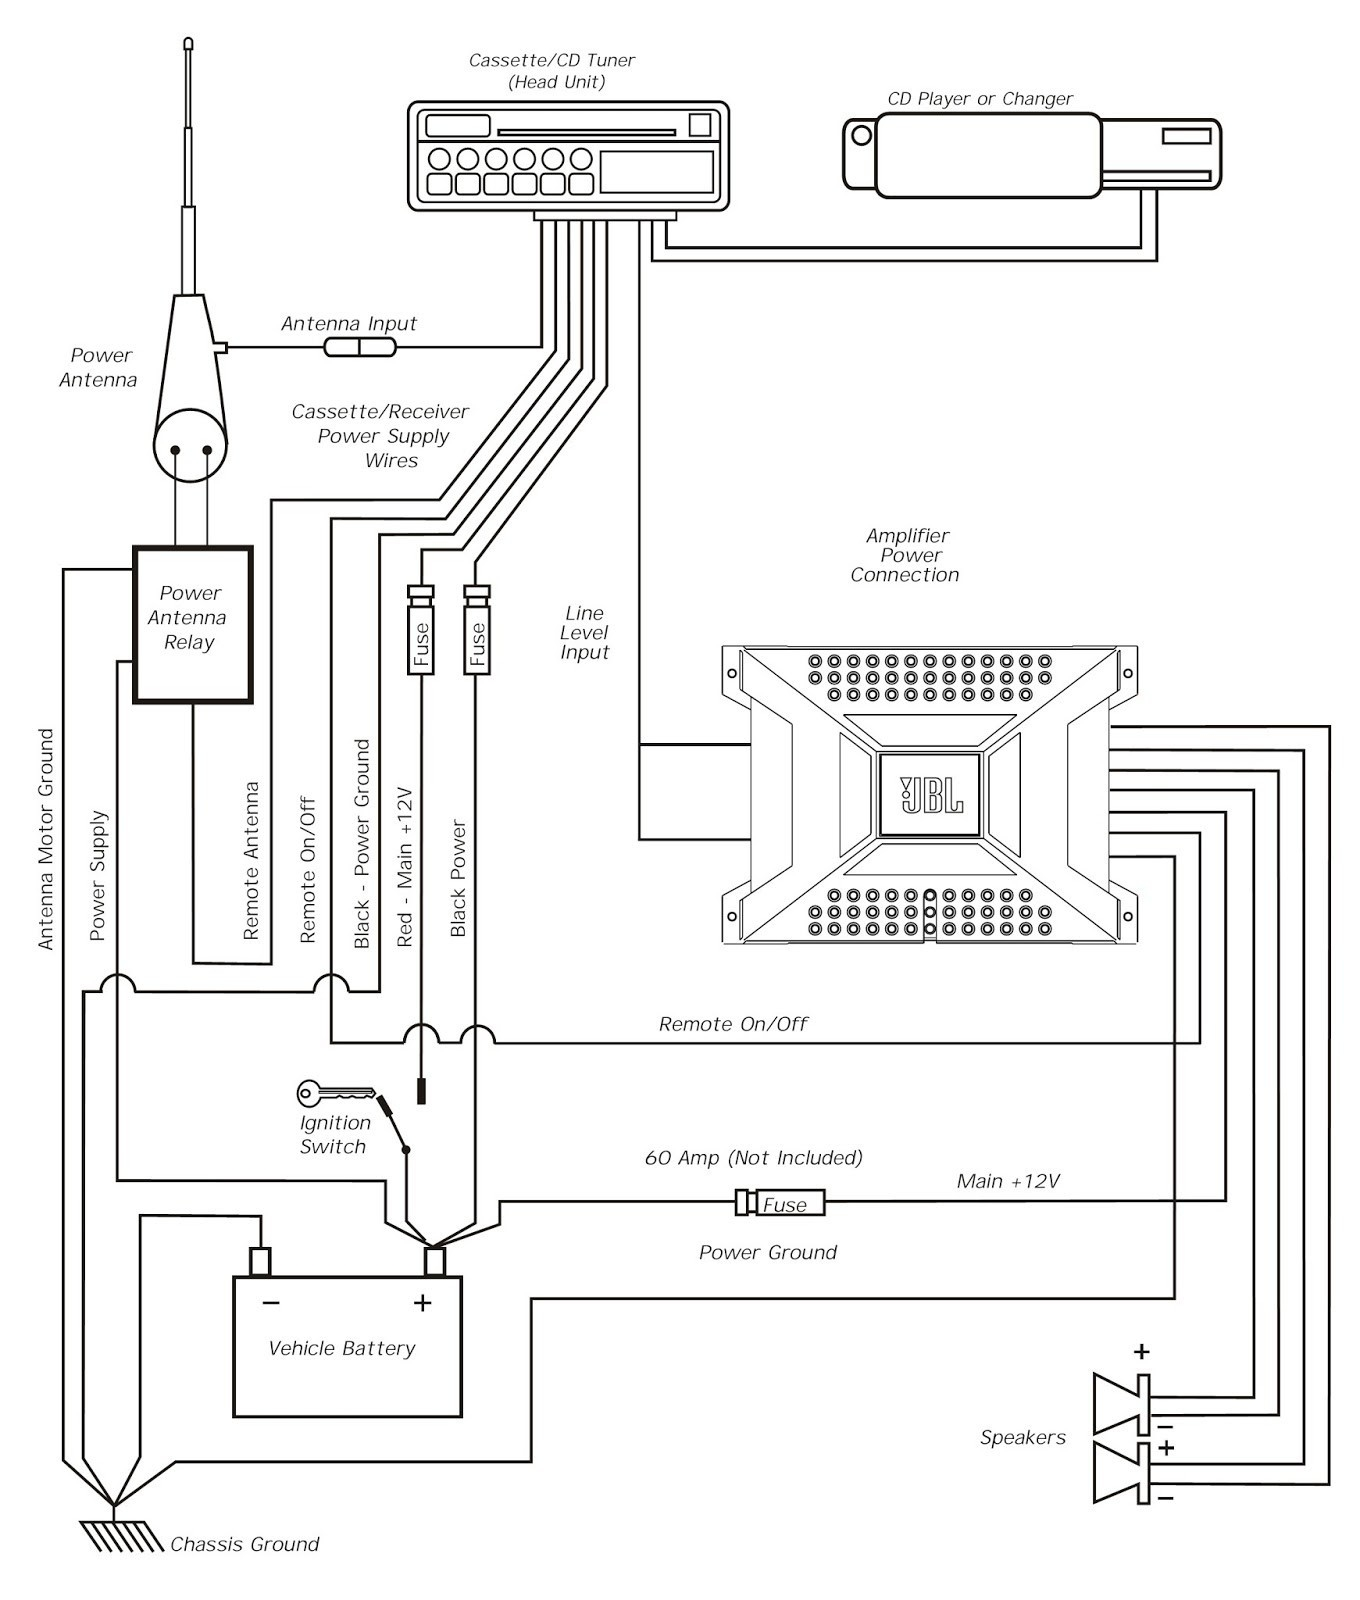 hight resolution of bose acoustimass wiring diagram wiring diagram for bose car audio valid wiring diagram bose amp